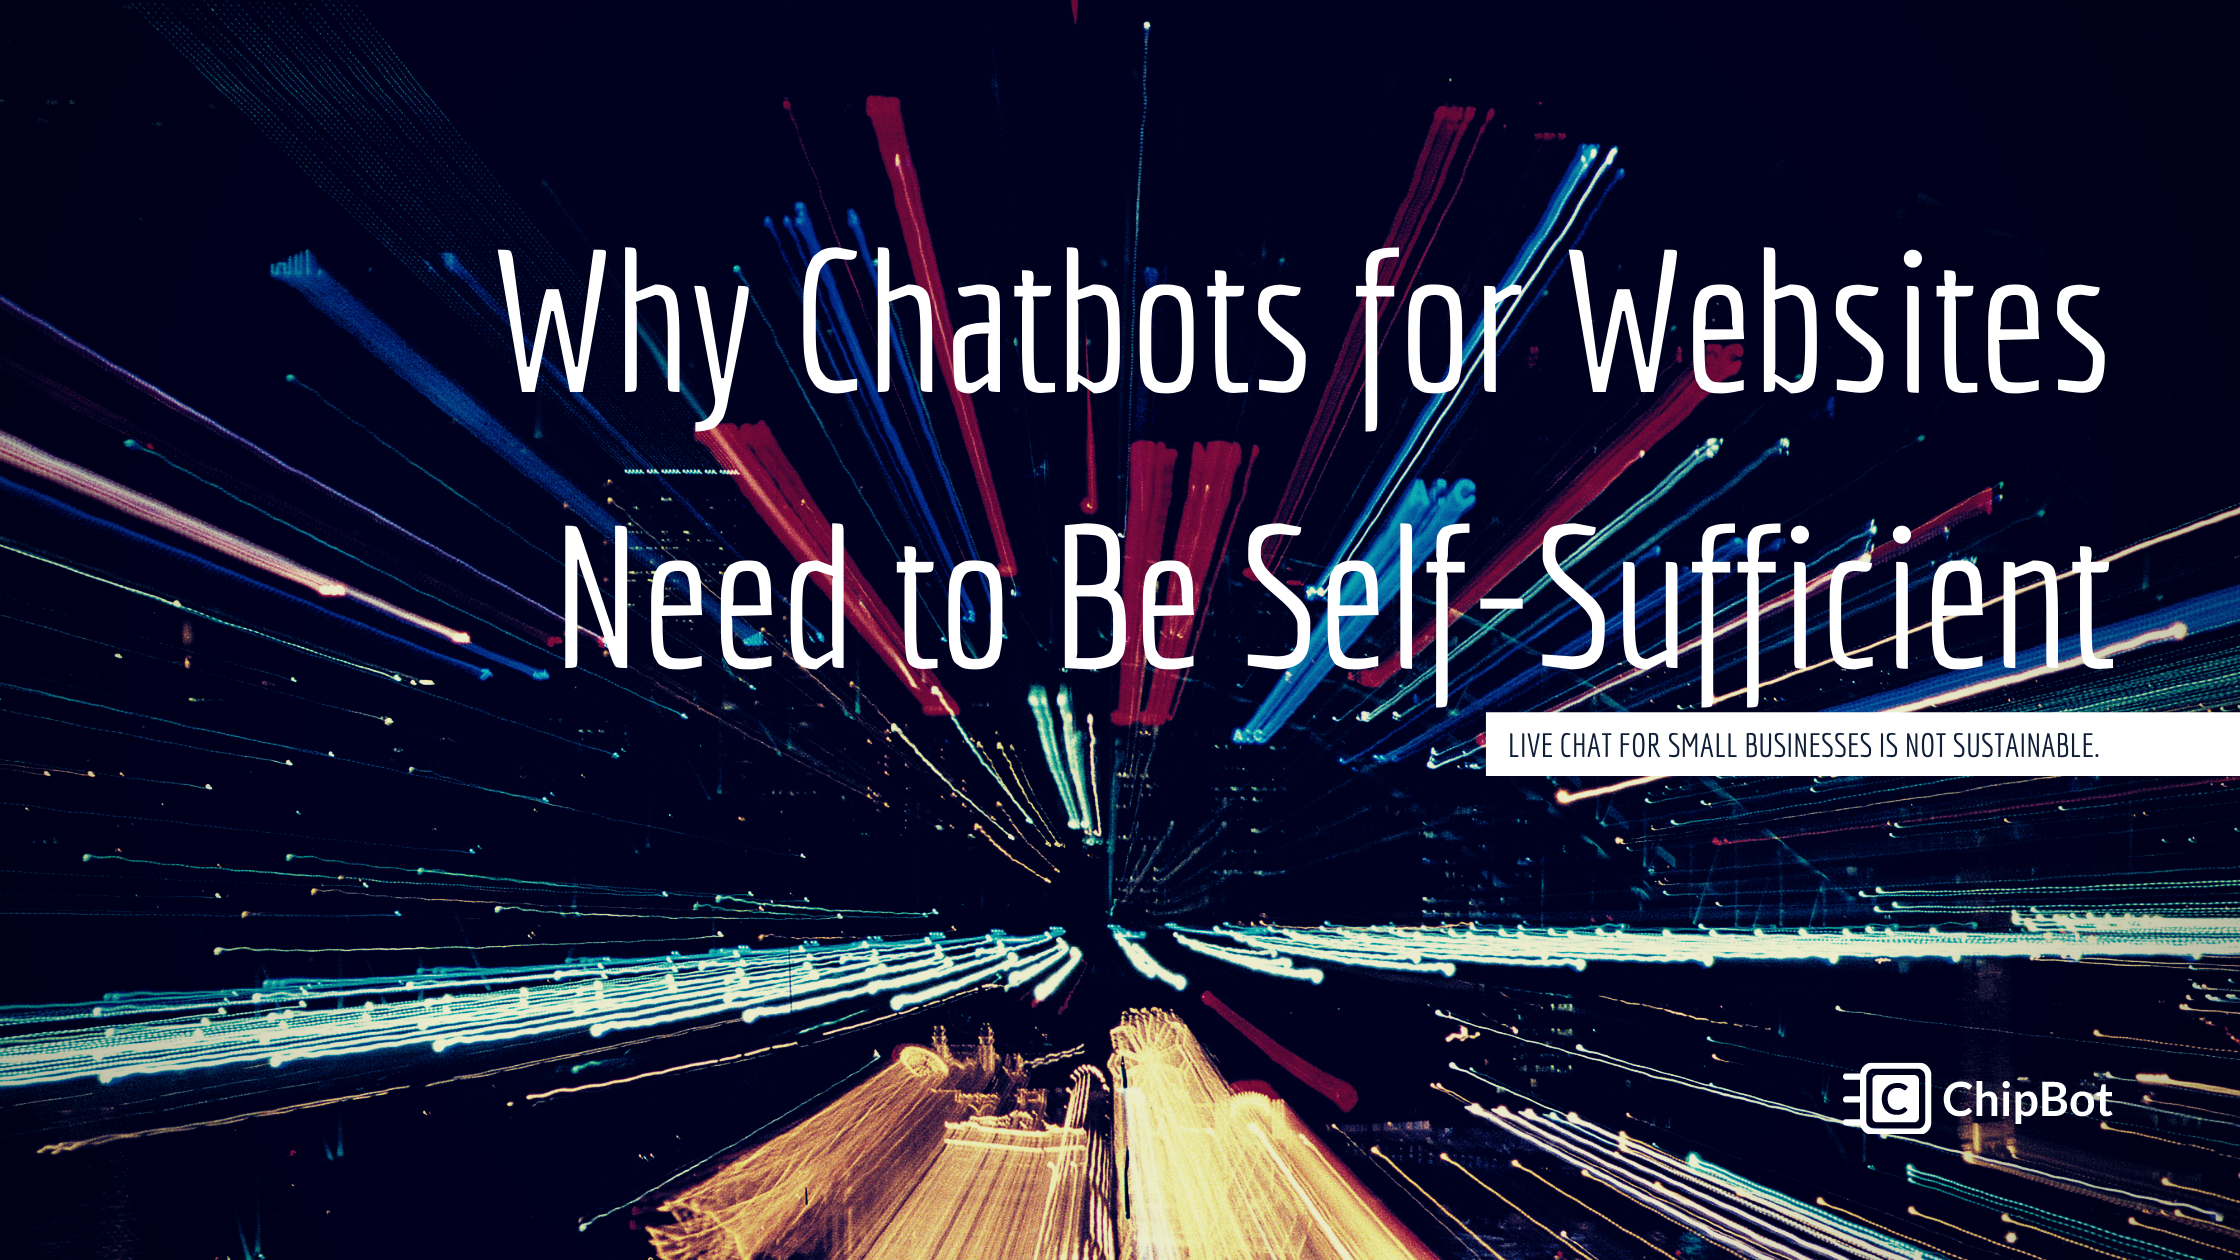 Why Chatbots for Websites Need to Be Self-Sufficient